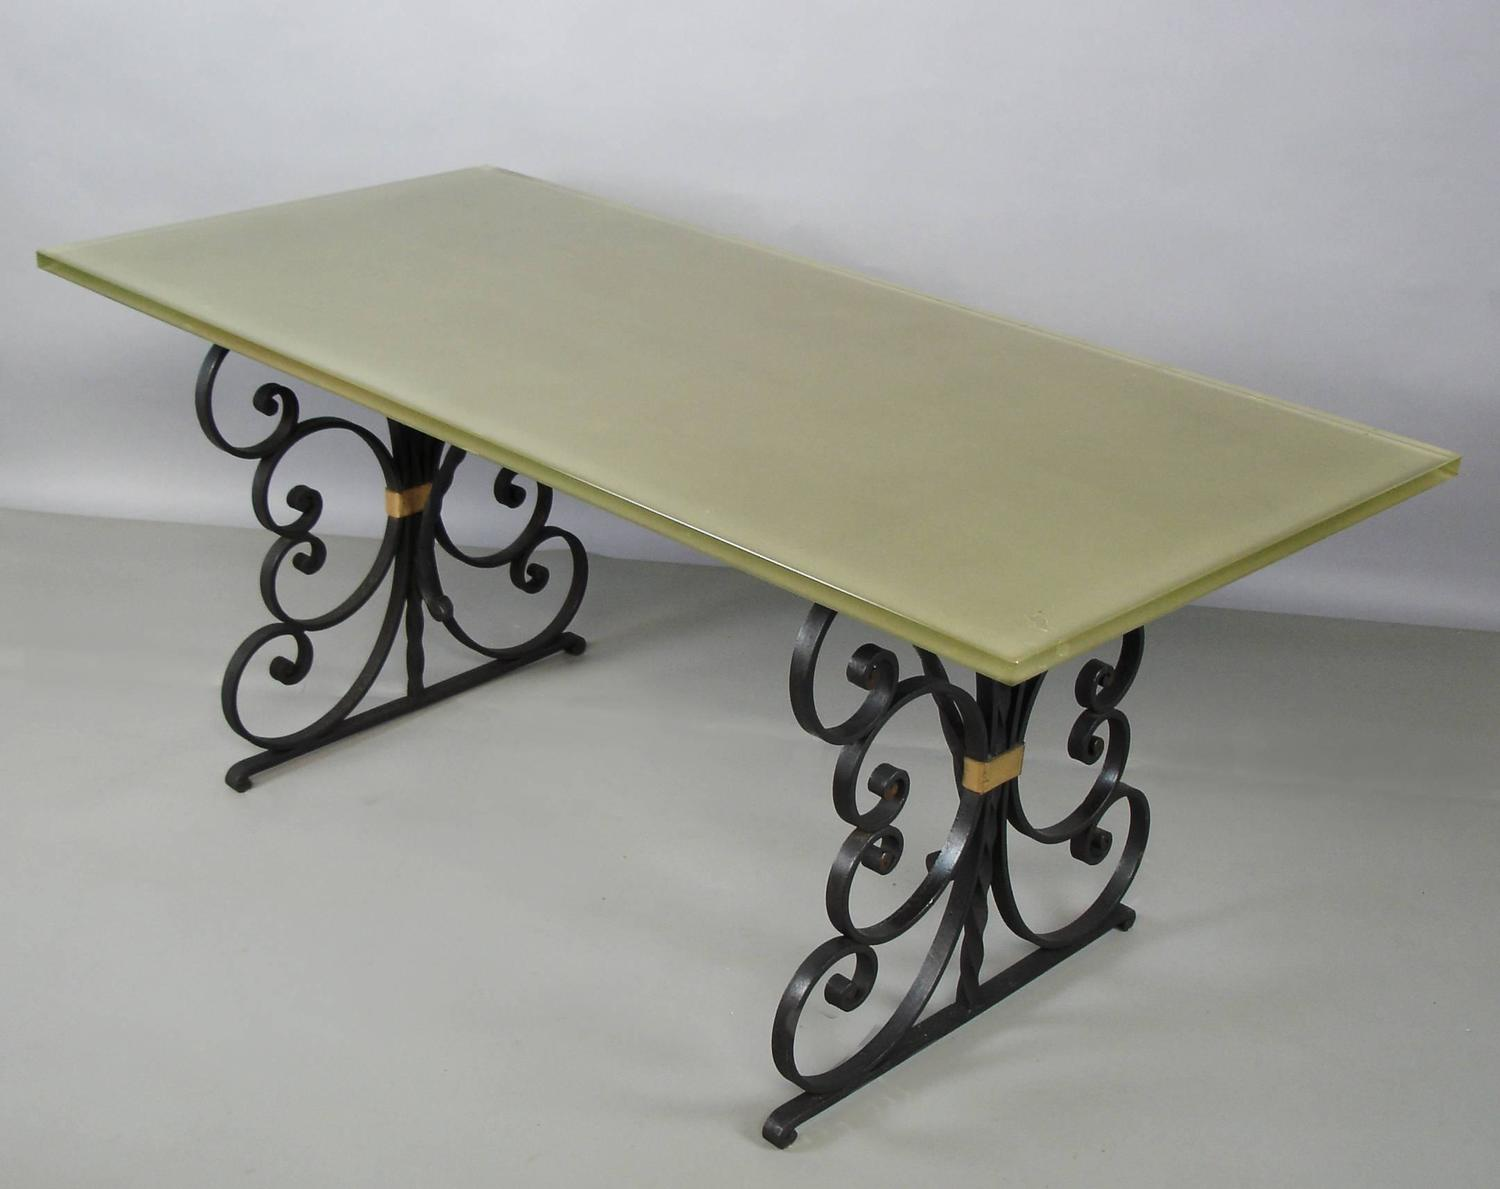 1940s Wrought Iron and Glass Top Dining Table For Sale at